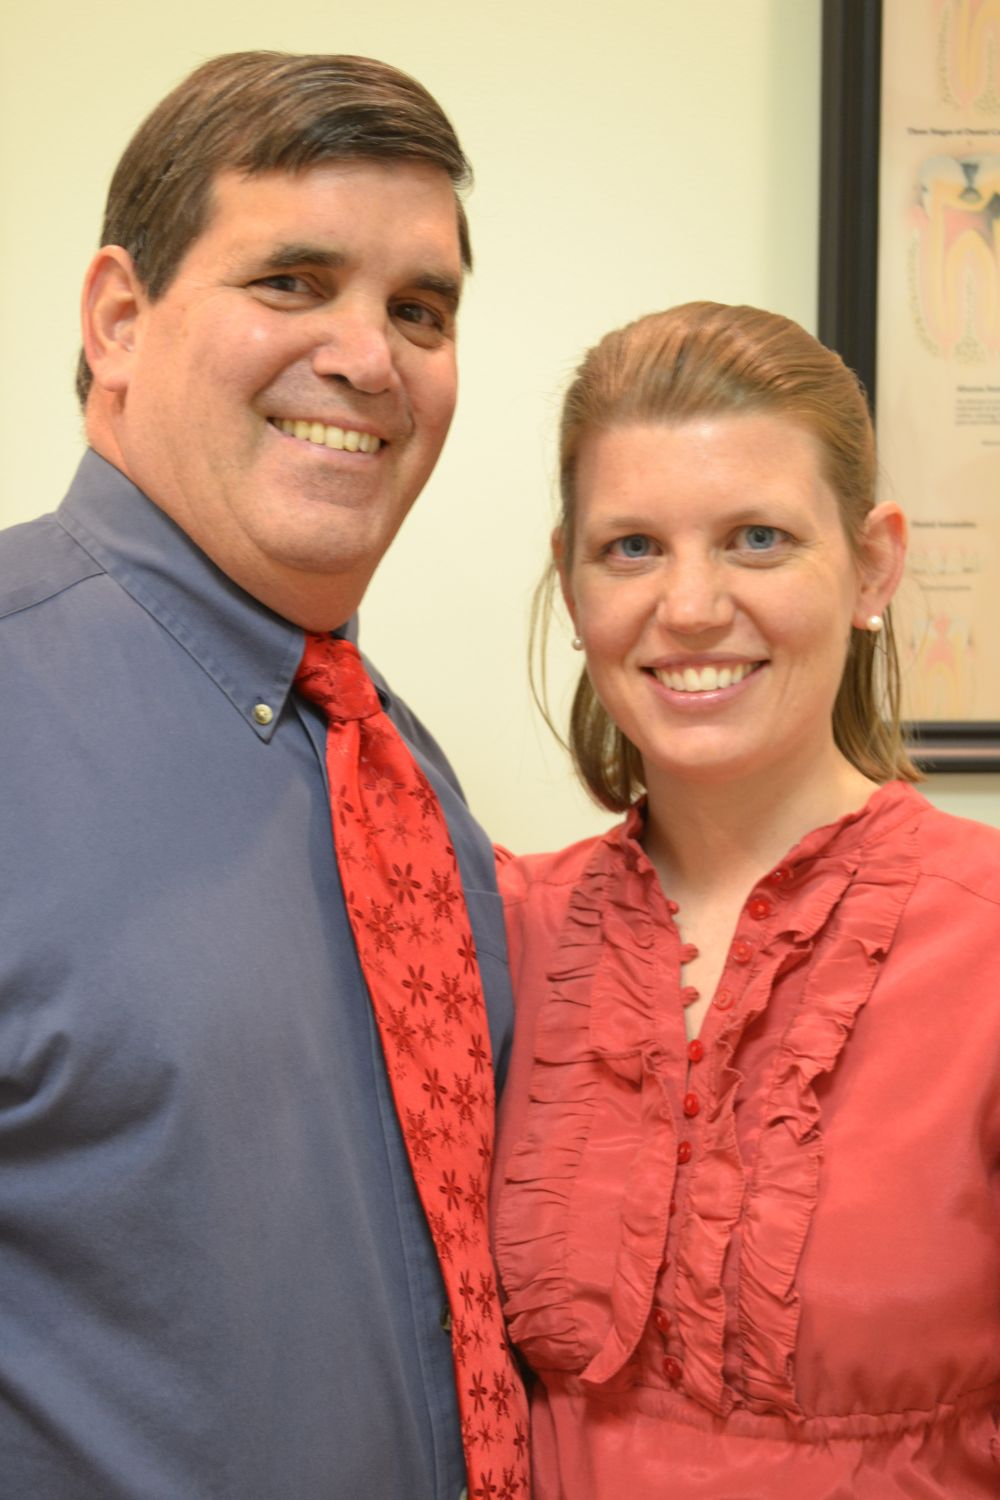 Family dentistry consultation in Ft. Mitchell, KY